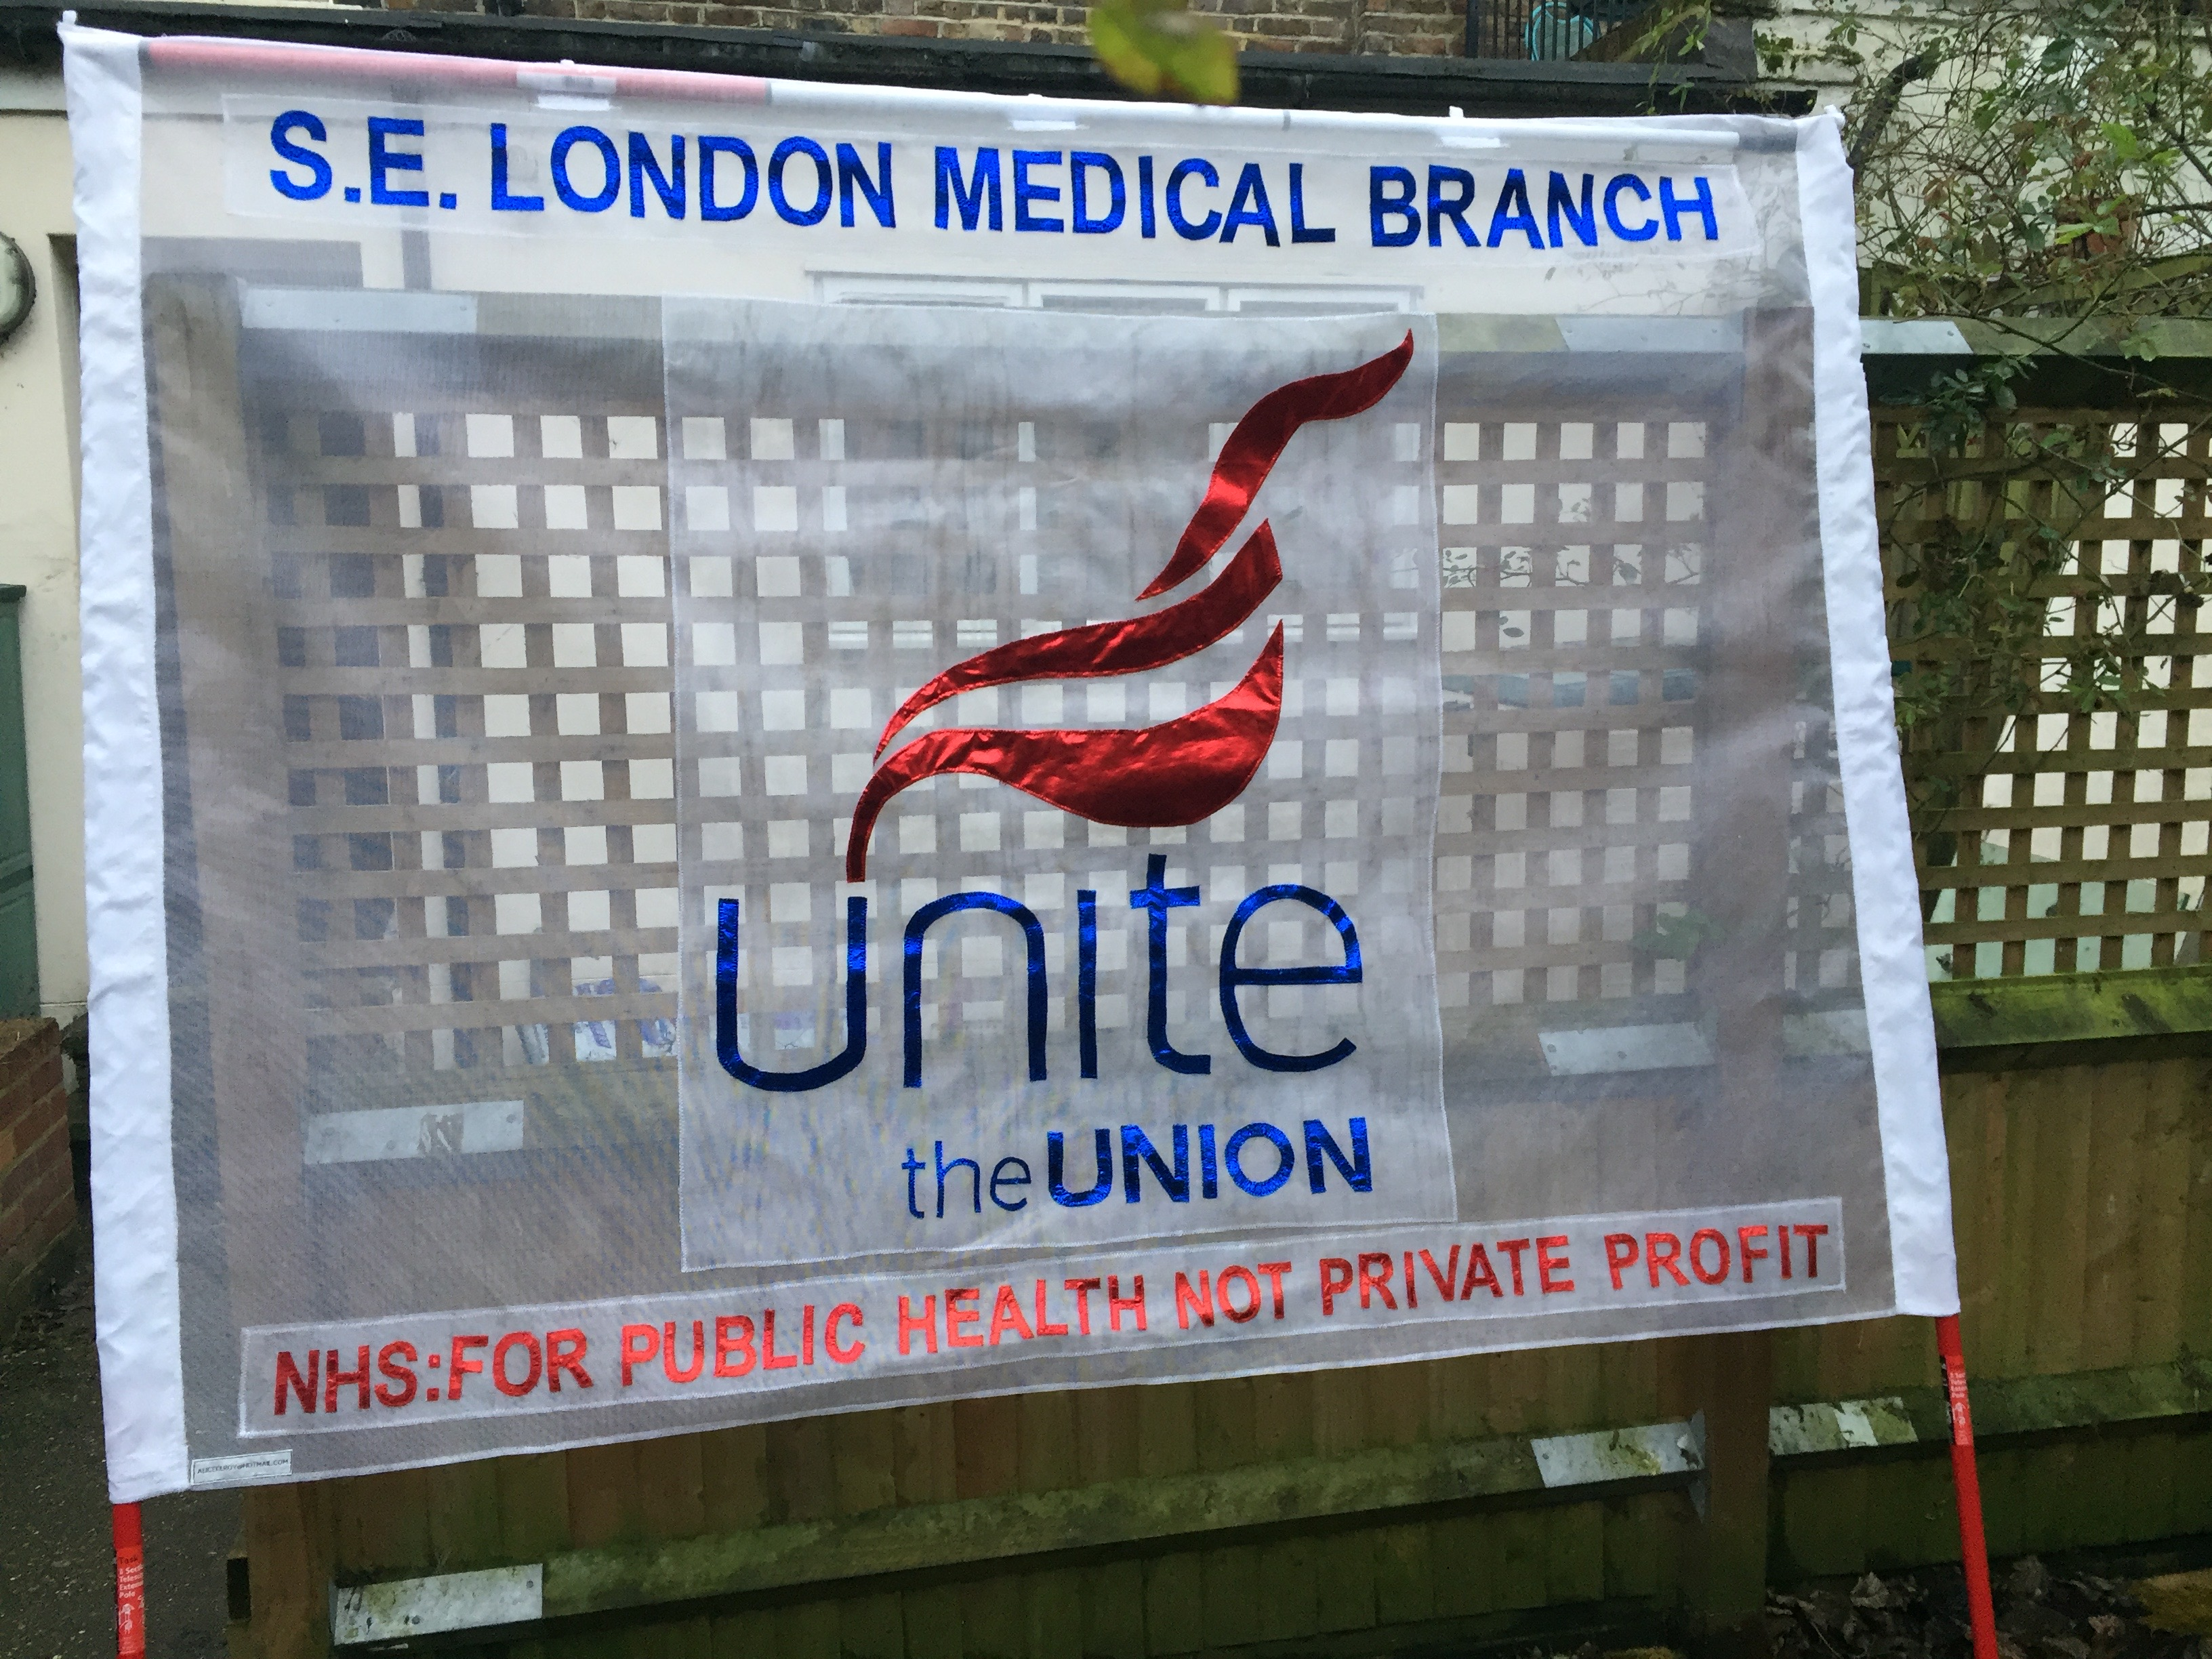 Unite the Union SE London Medical